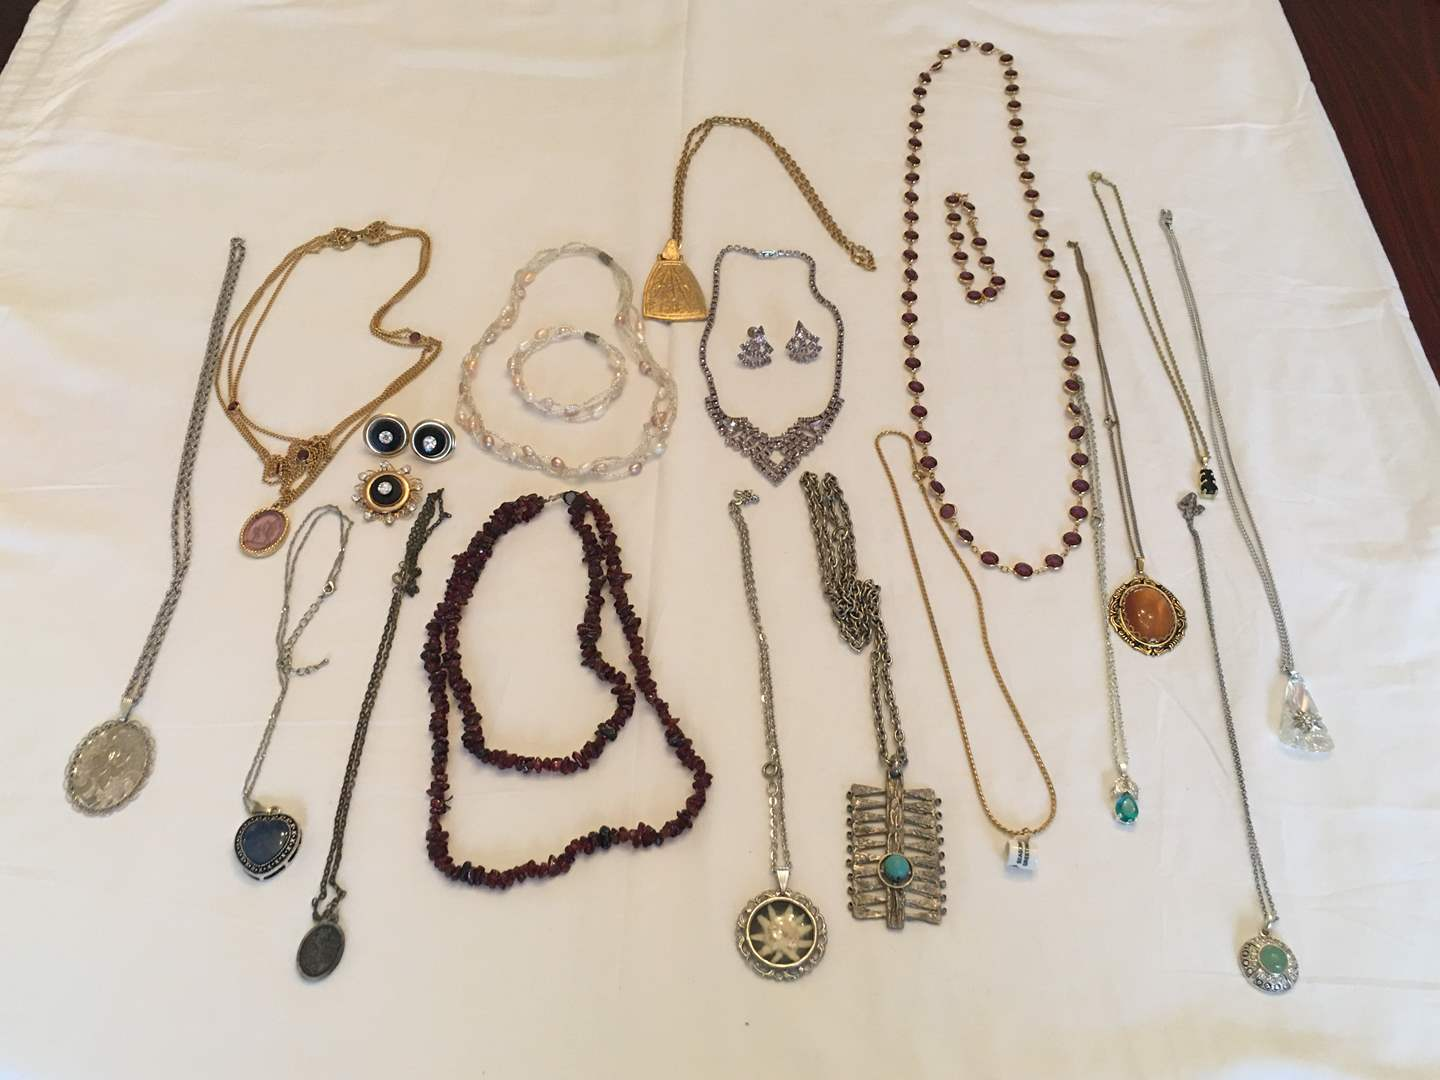 Lot # 135 - Nice Selection of Costume Jewelry: Necklaces, Bracelets, Earrings (main image)